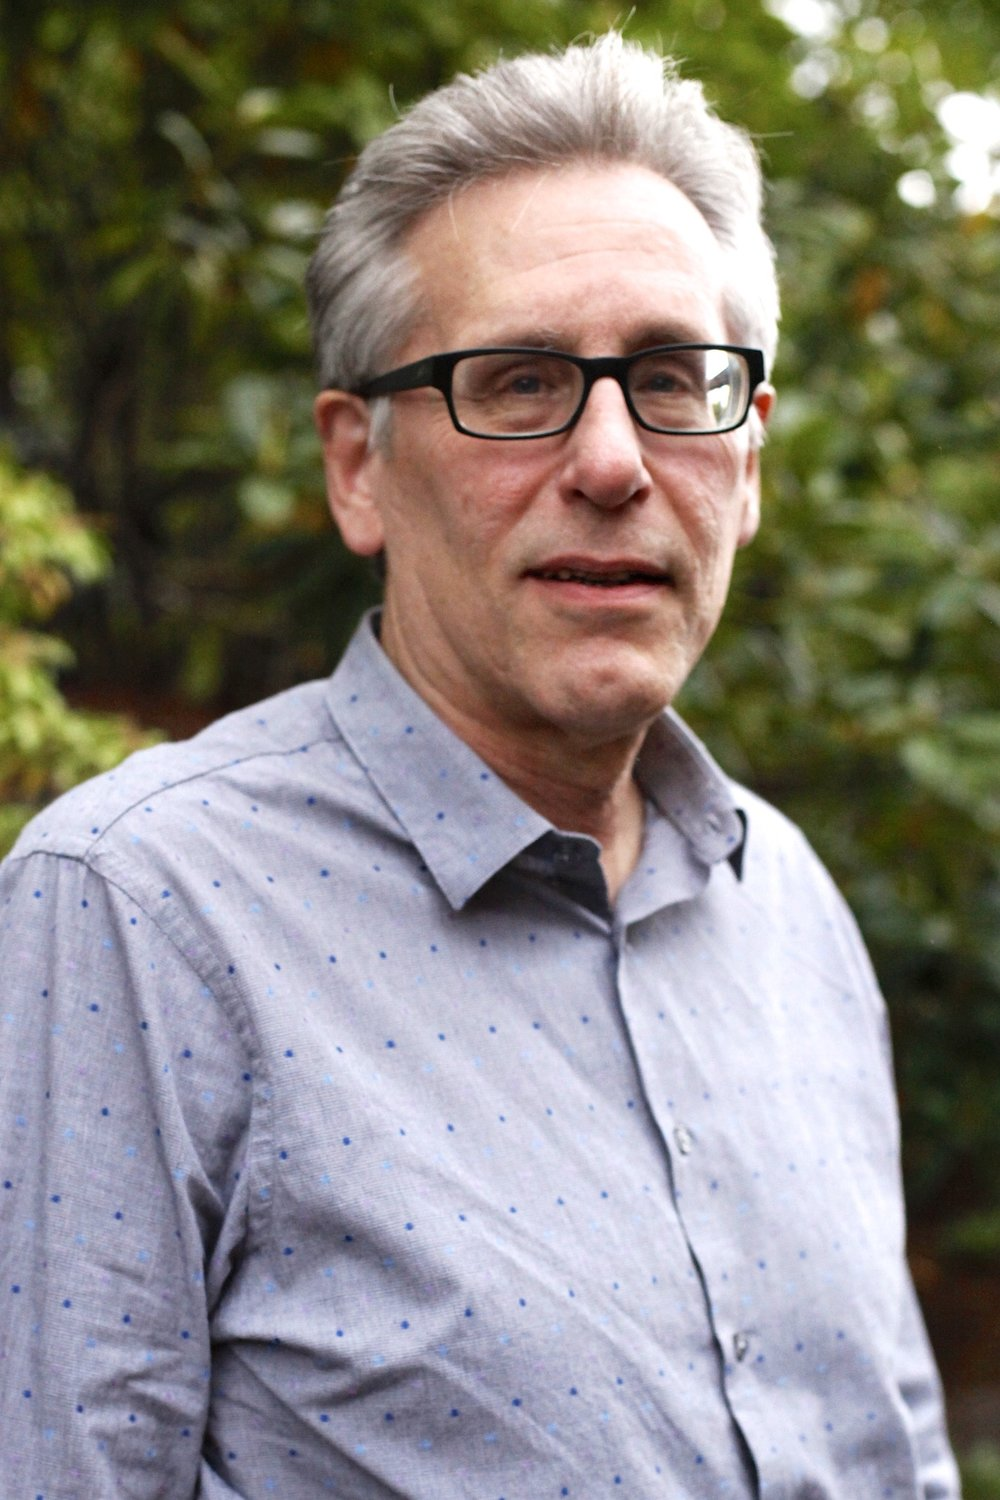 andrew koerner, MS, LMHC, therapist    ∙  Adults (18 & up)  ∙  Couples and Families  ∙  PTSD and Trauma  ∙  Depression  ∙  Anxiety  ∙  Marital Issues  ∙  Relationships  ∙ Self-esteem and  Identity Issues  ∙  Parent/ Child Conflict; Parenting  ∙  Life Cycle Transitions  ∙  Grief & Loss  ∙  Mindfulness Training